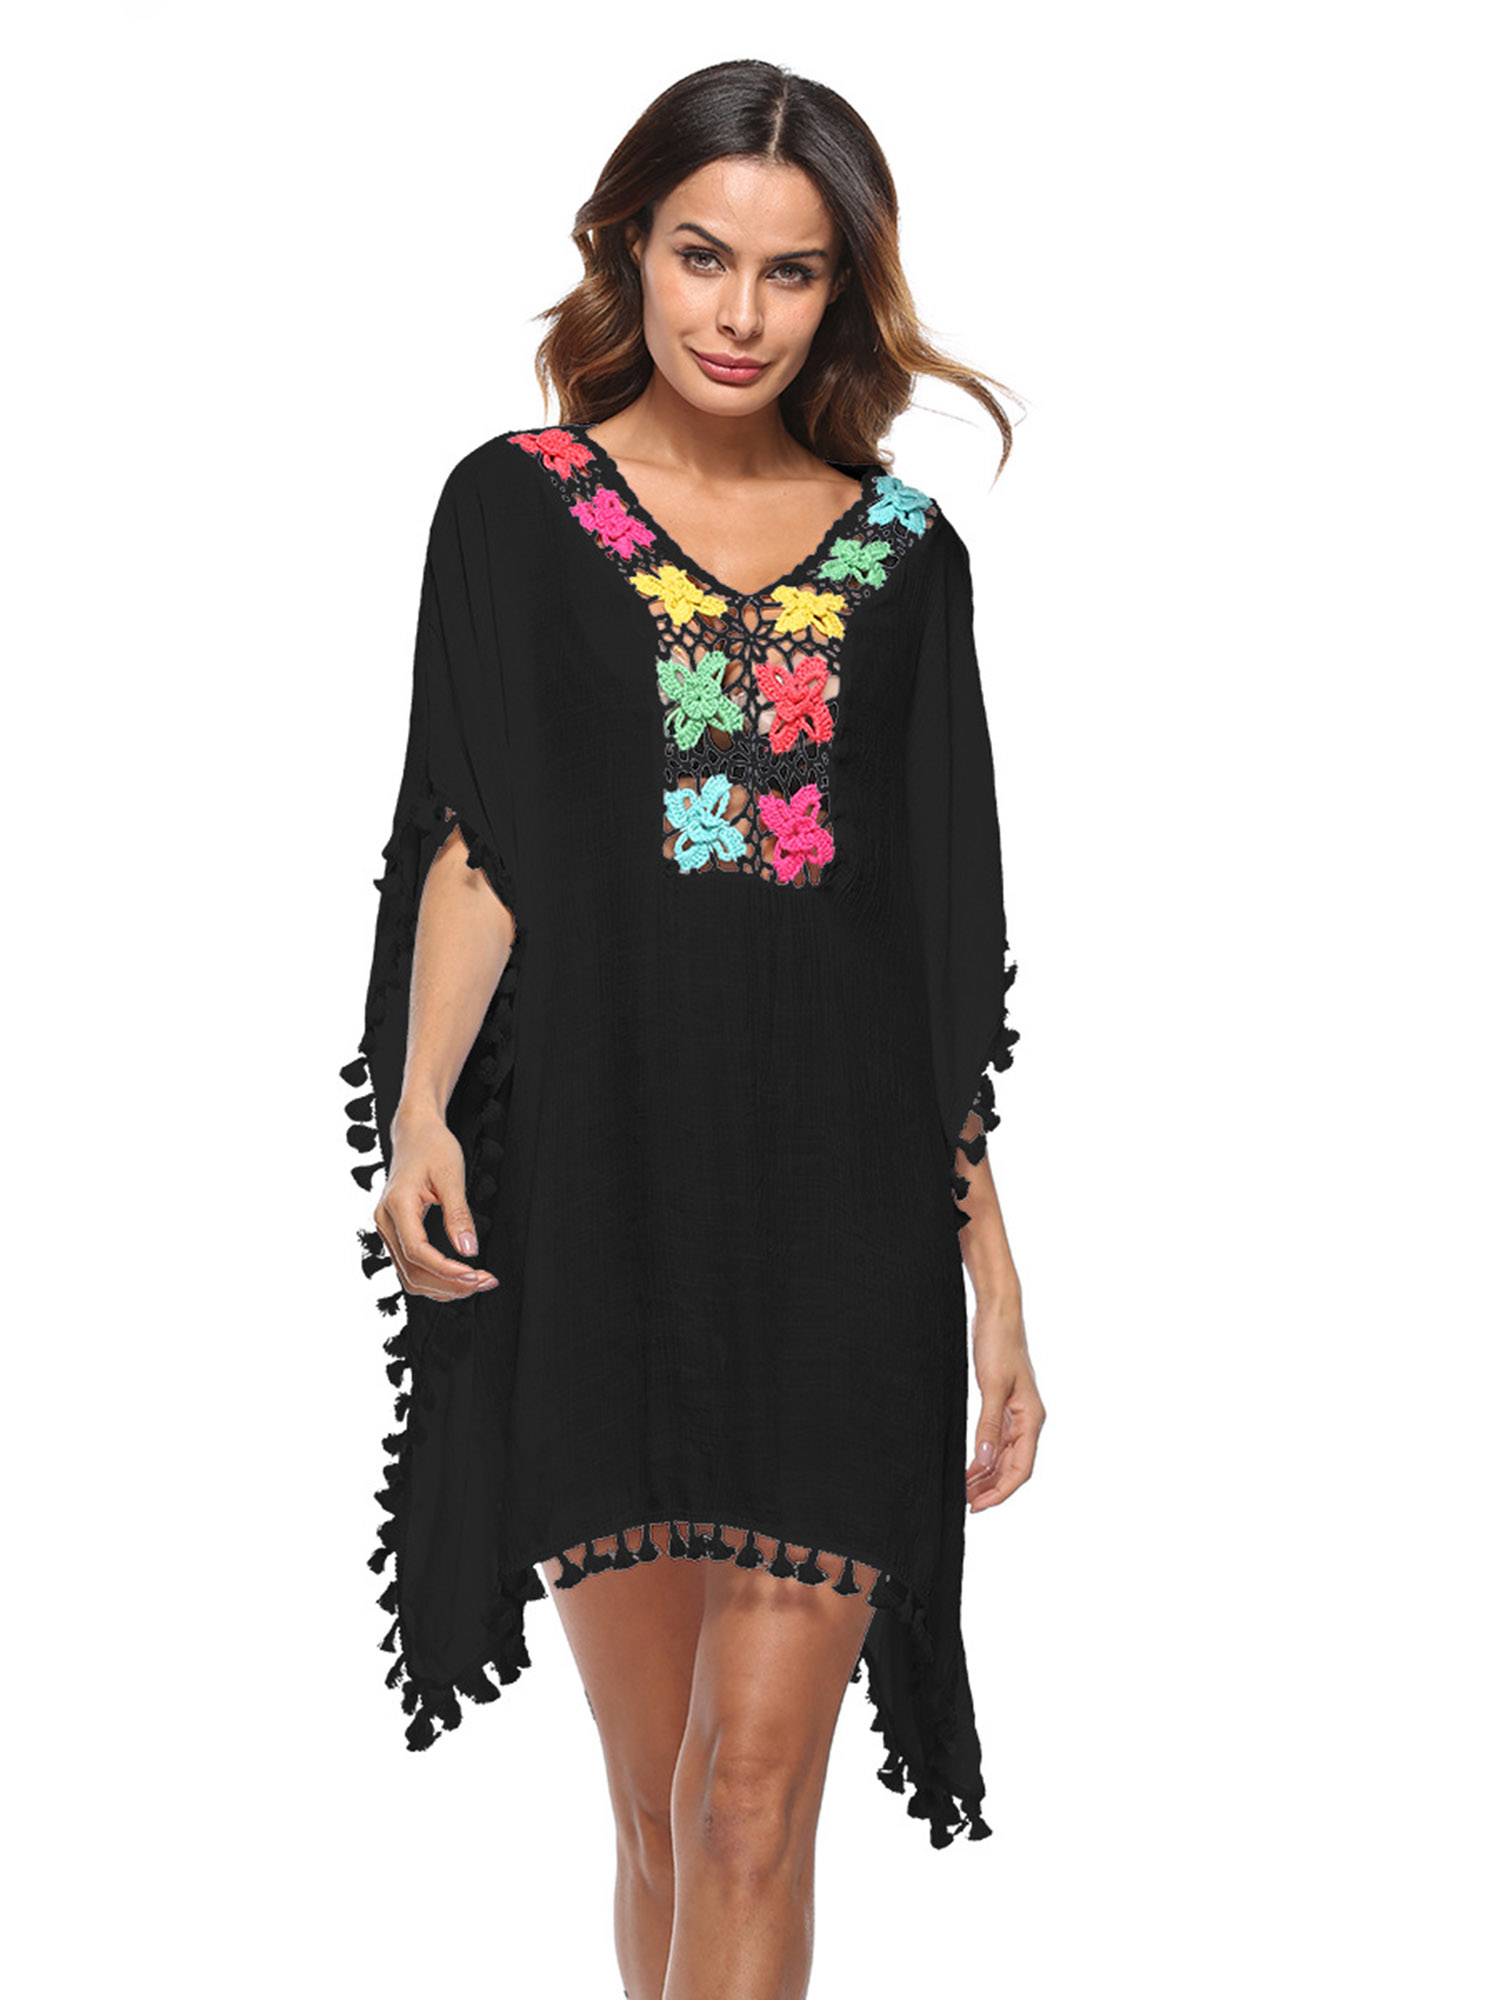 Women's Pompom Tassel Trim Bikini Swimsuit Beach Cover Up,Black